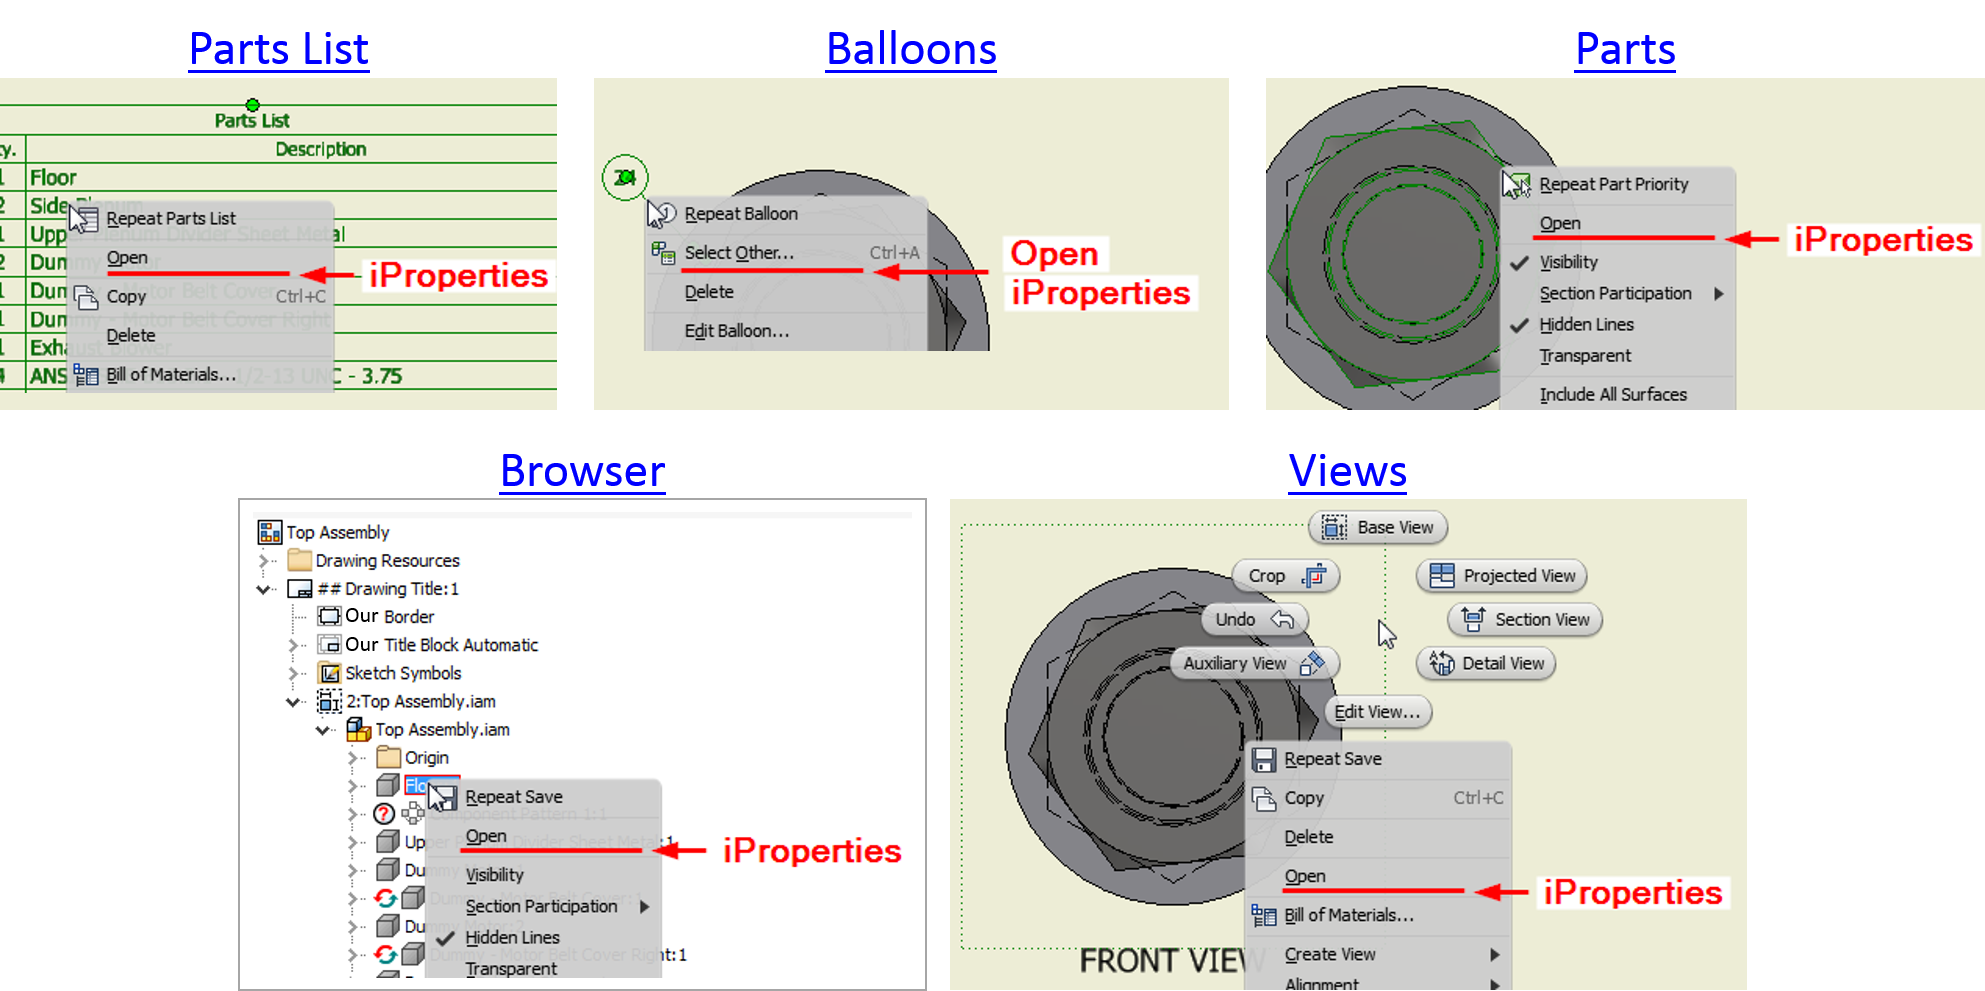 Rim drawing inventor autodesk car. Access iproperties of components